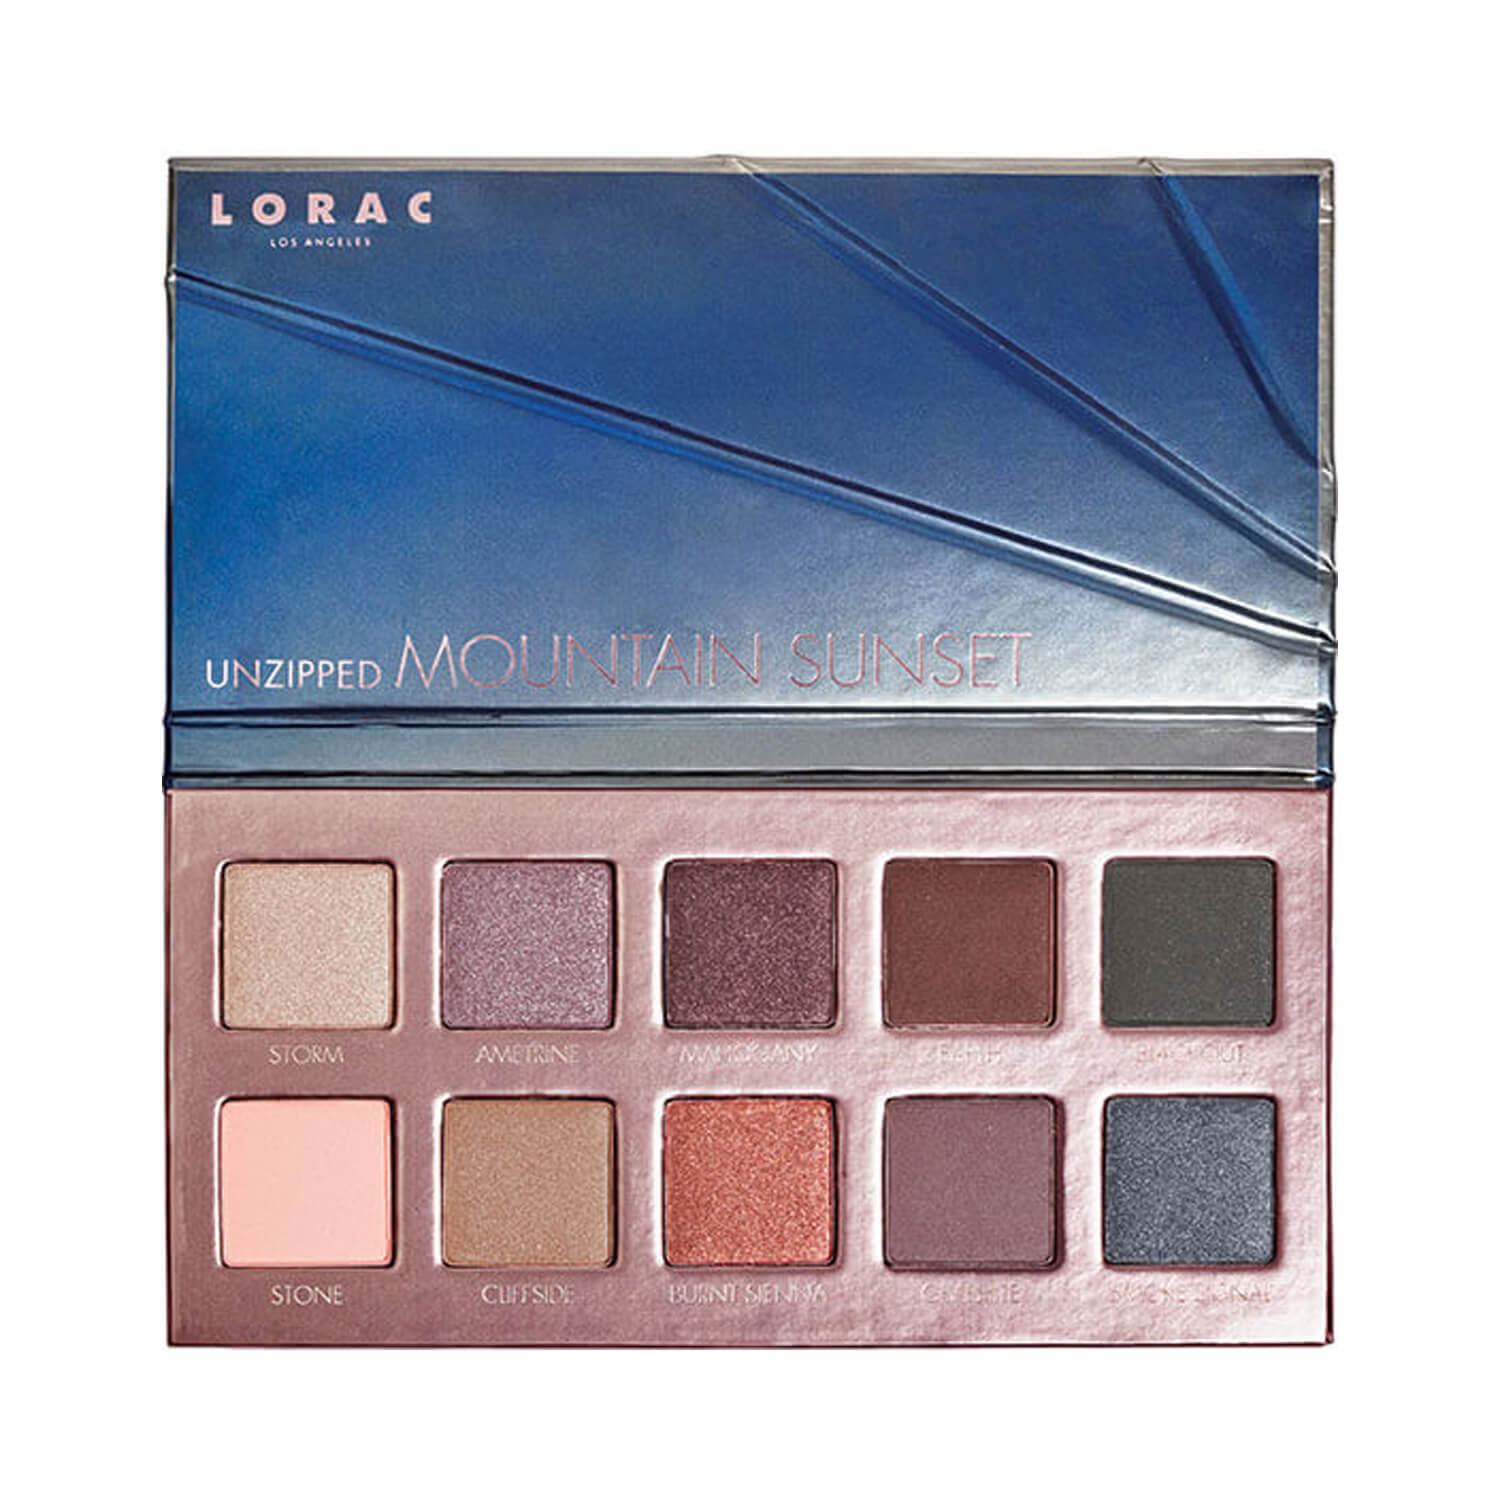 Lorac Unzipped Mountain Sunset Eyeshadow Palette